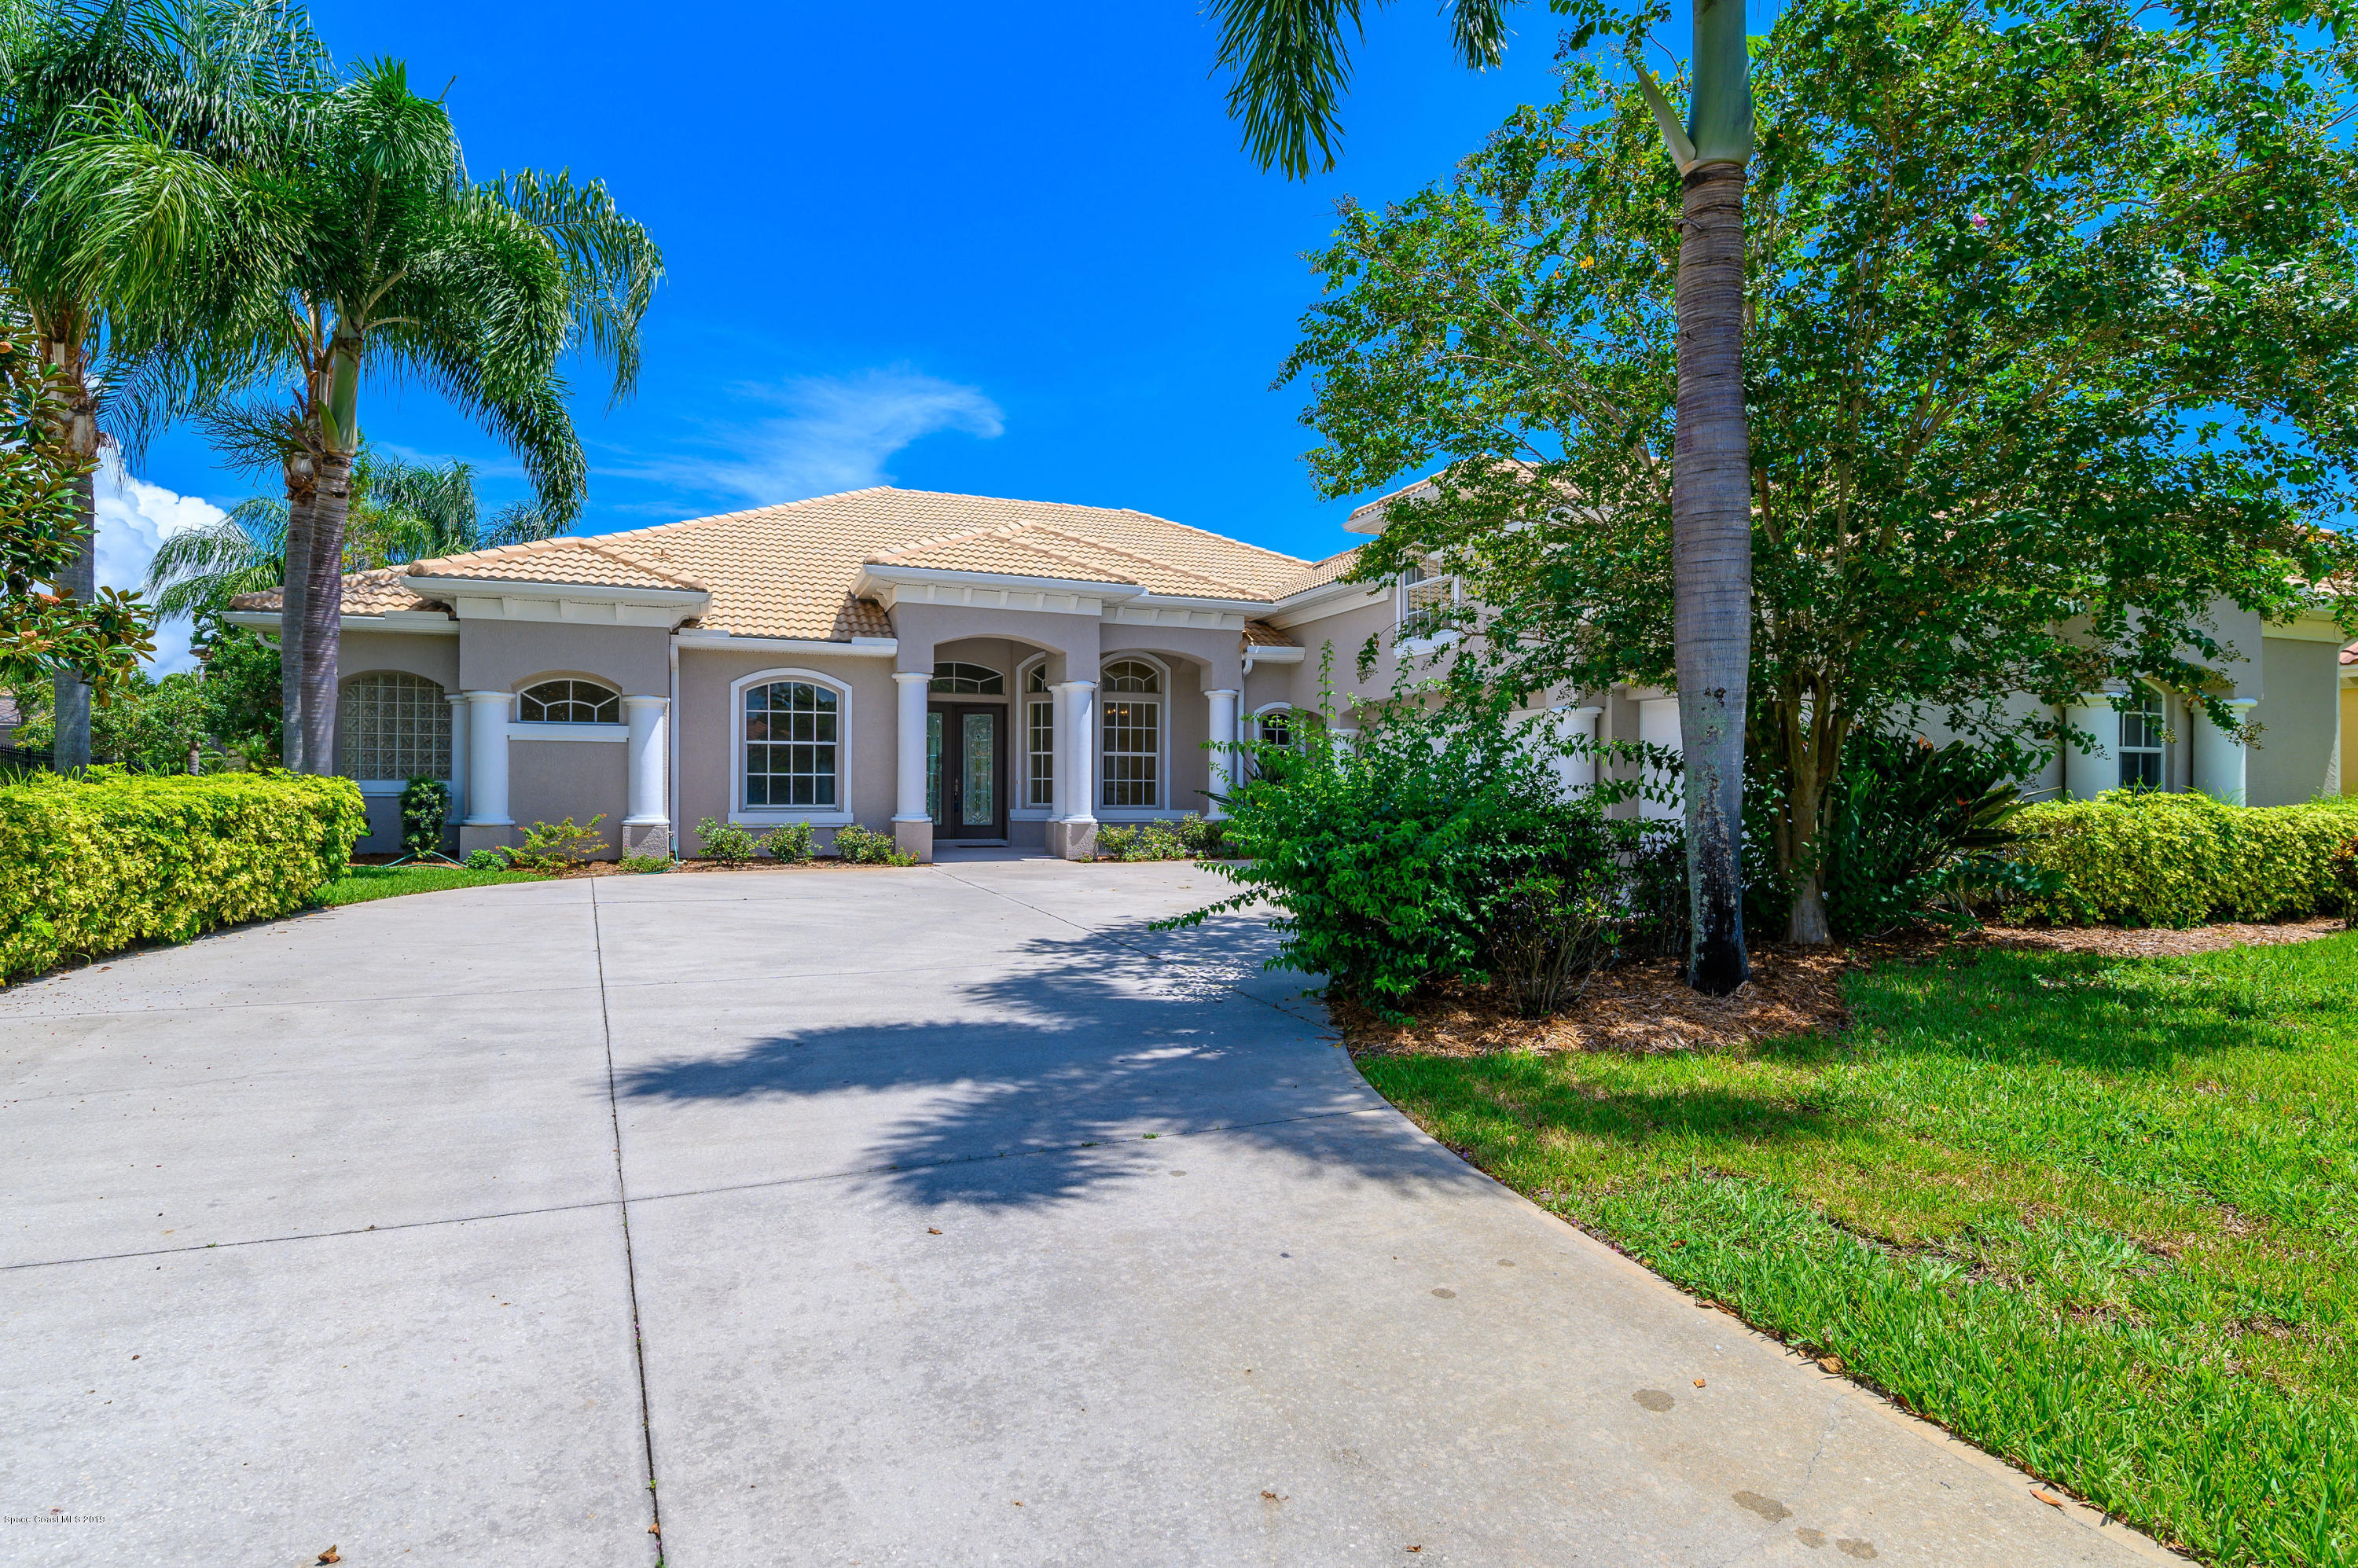 Single Family Homes for Sale at 3278 Cappio Melbourne, Florida 32940 United States